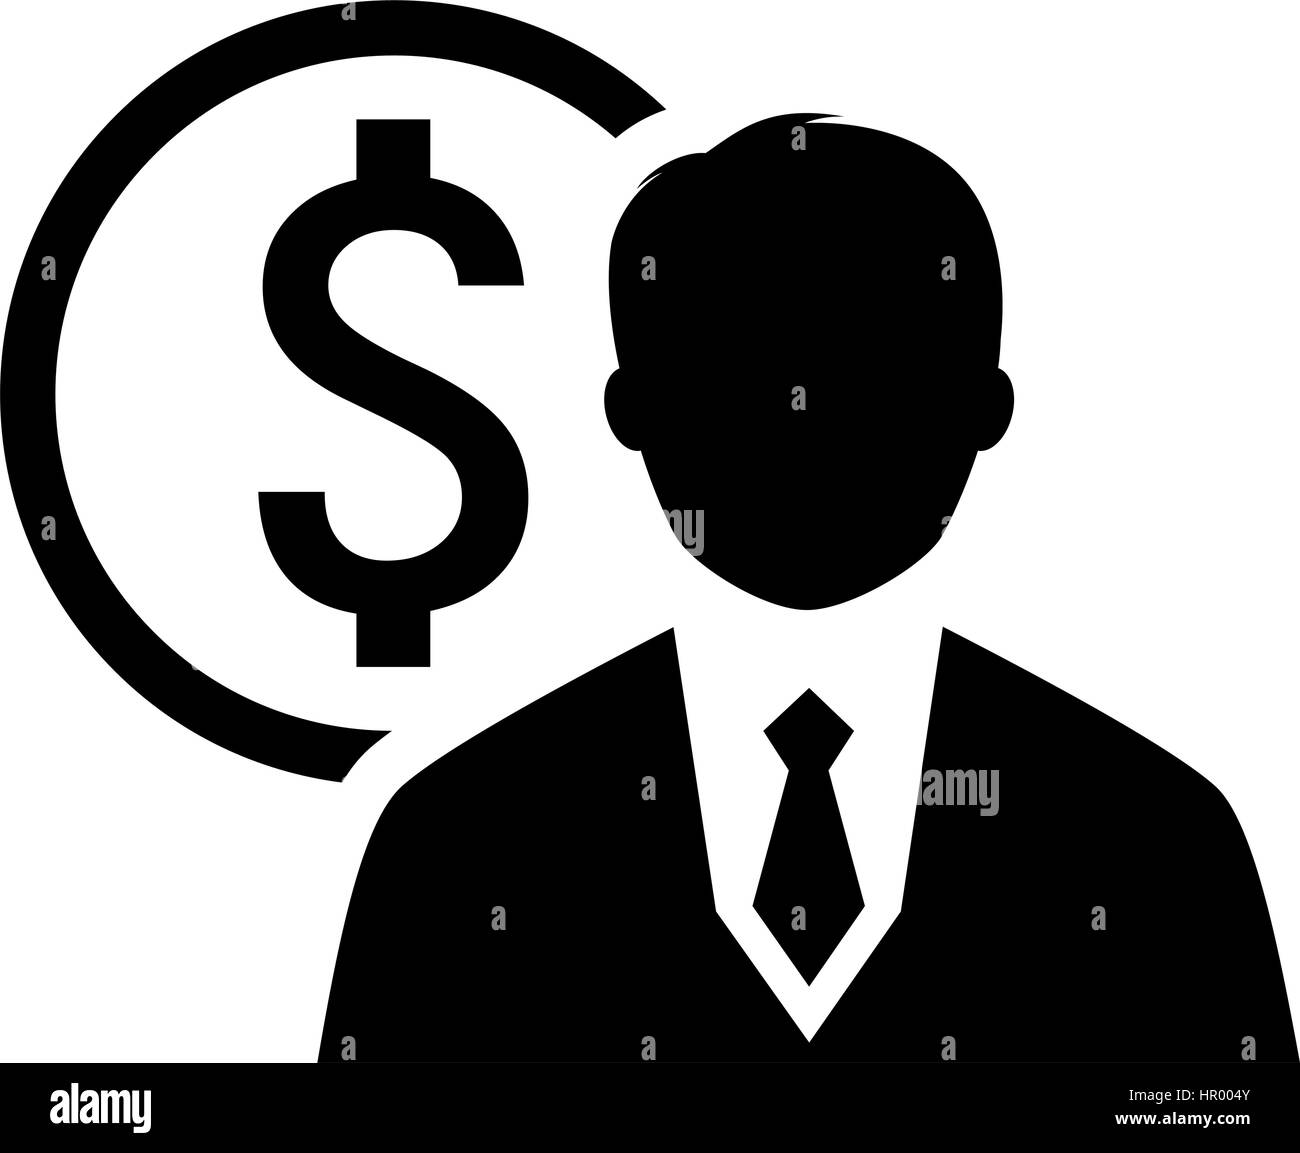 Value Icon Business Concept Flat Design Stock Vector Image Art Alamy